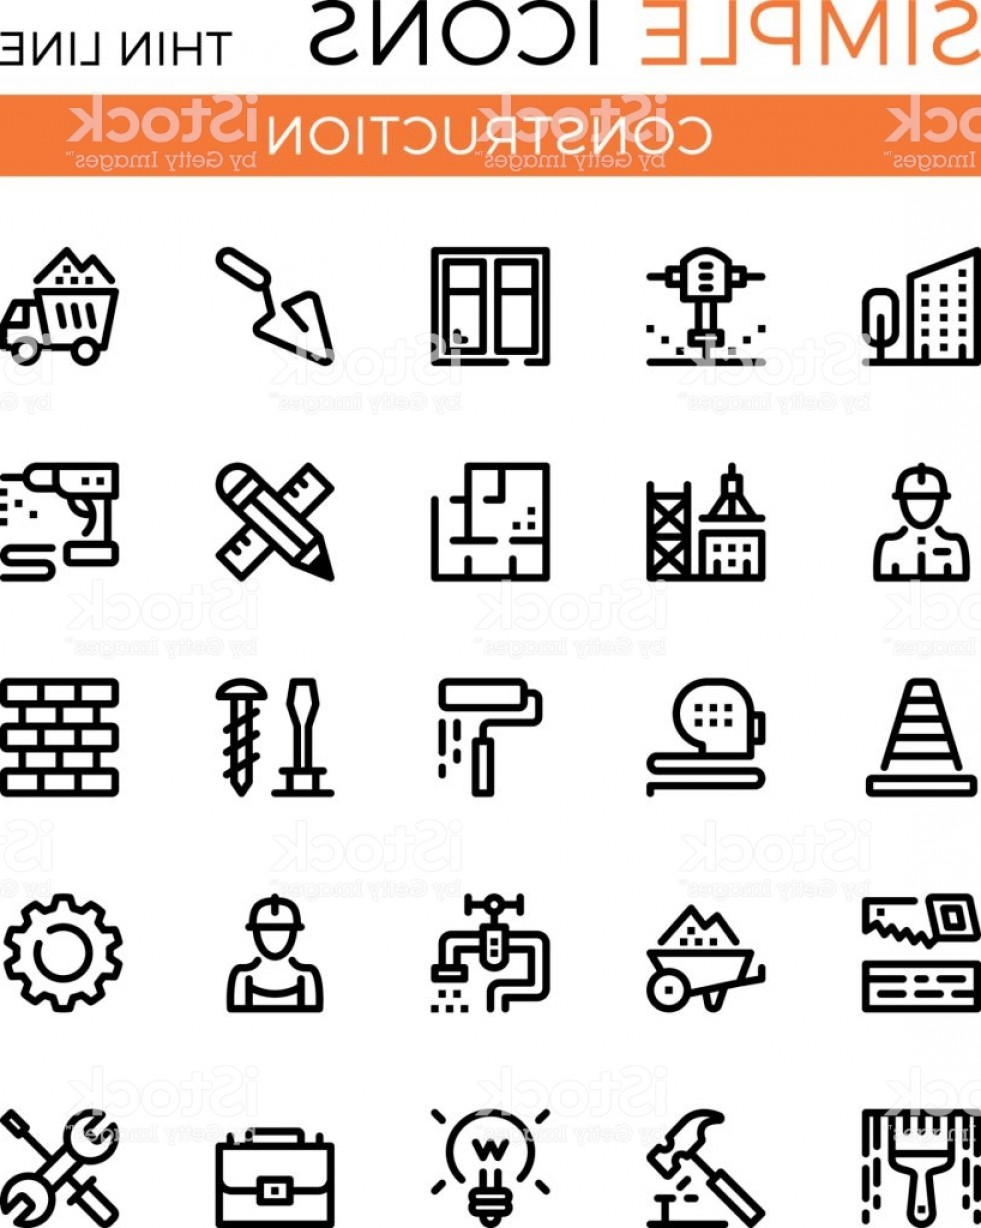 Vector Graphic Of Civil Engineering: Construction Civil Engineering Building Vector Thin Line Icons Set X Px Modern Gm